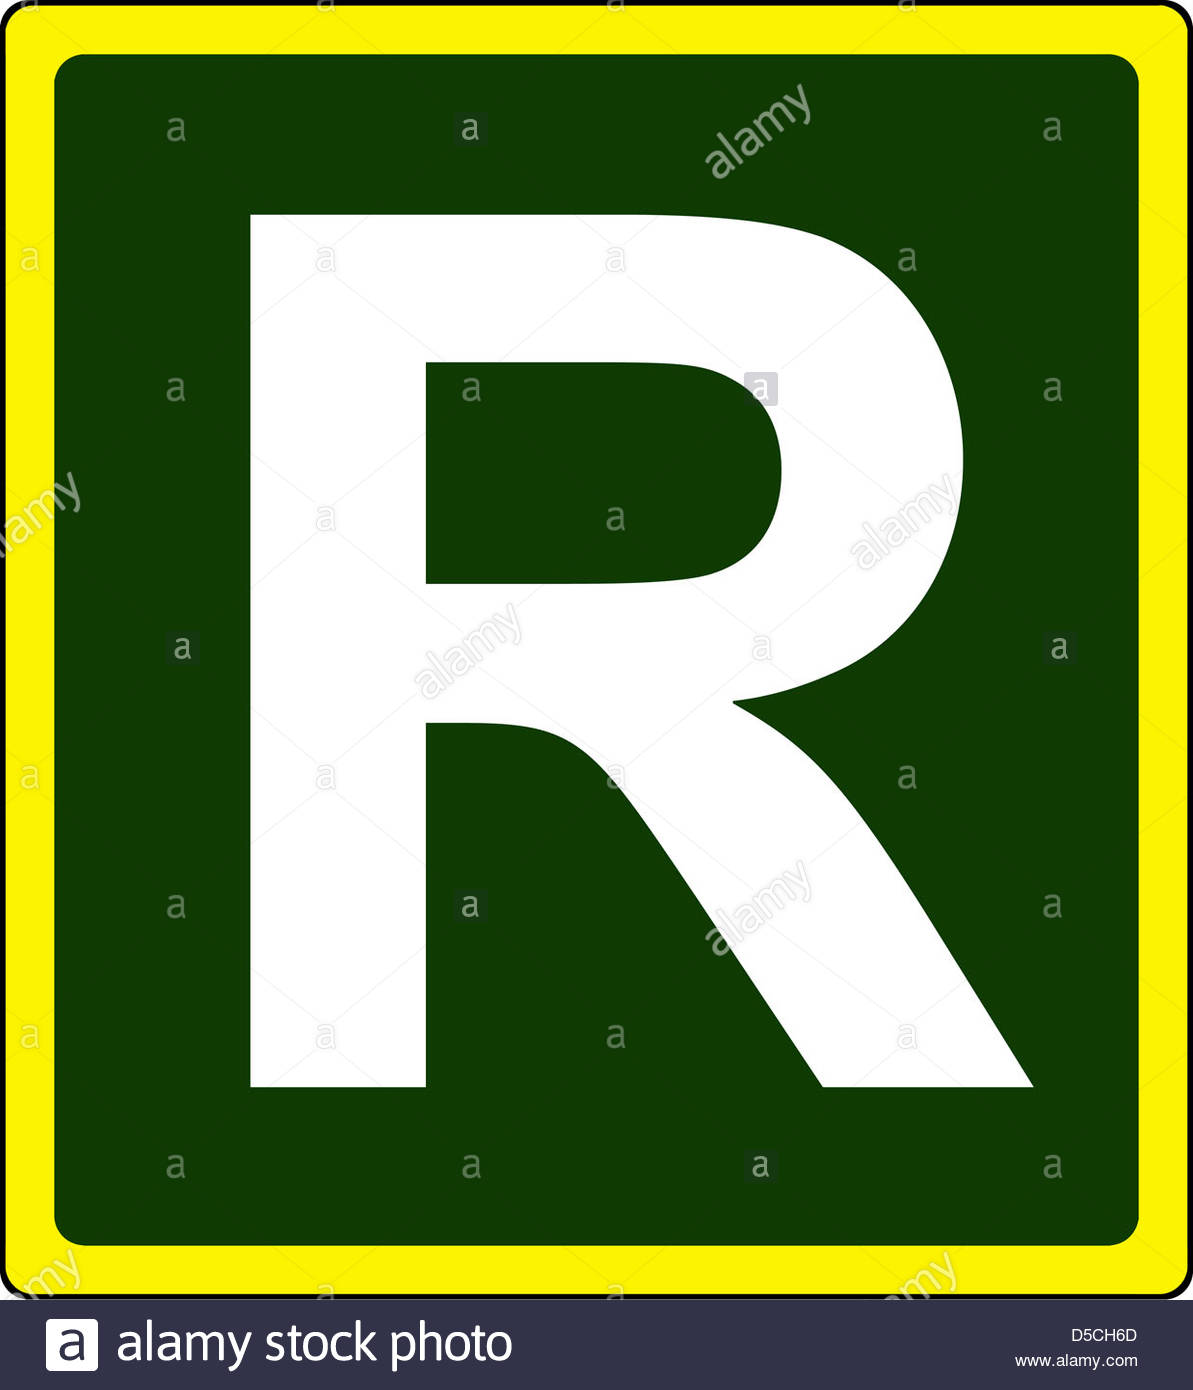 Primary Route Ring Road Sign Stock Photo, Royalty Free Image.